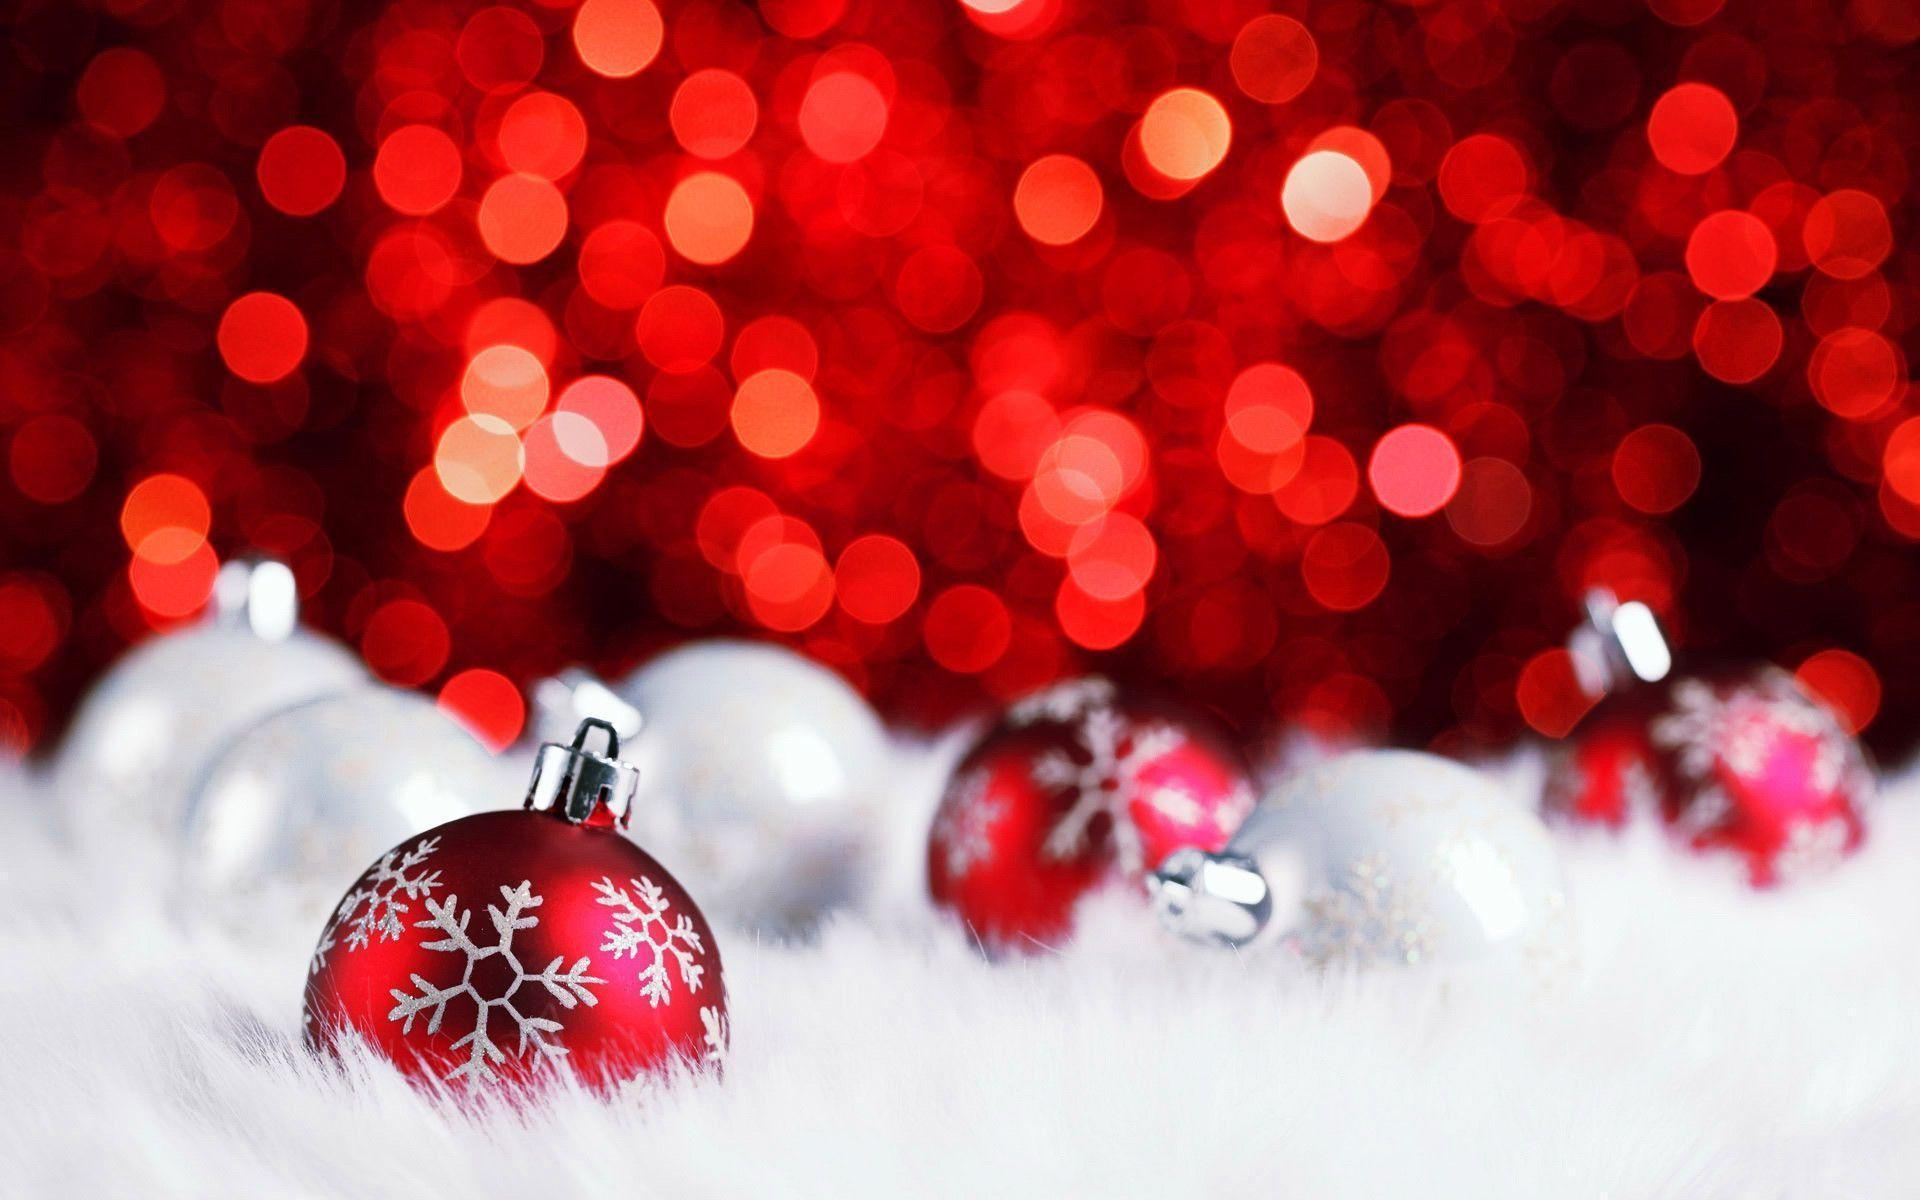 Red Aesthetic Christmas Wallpapers